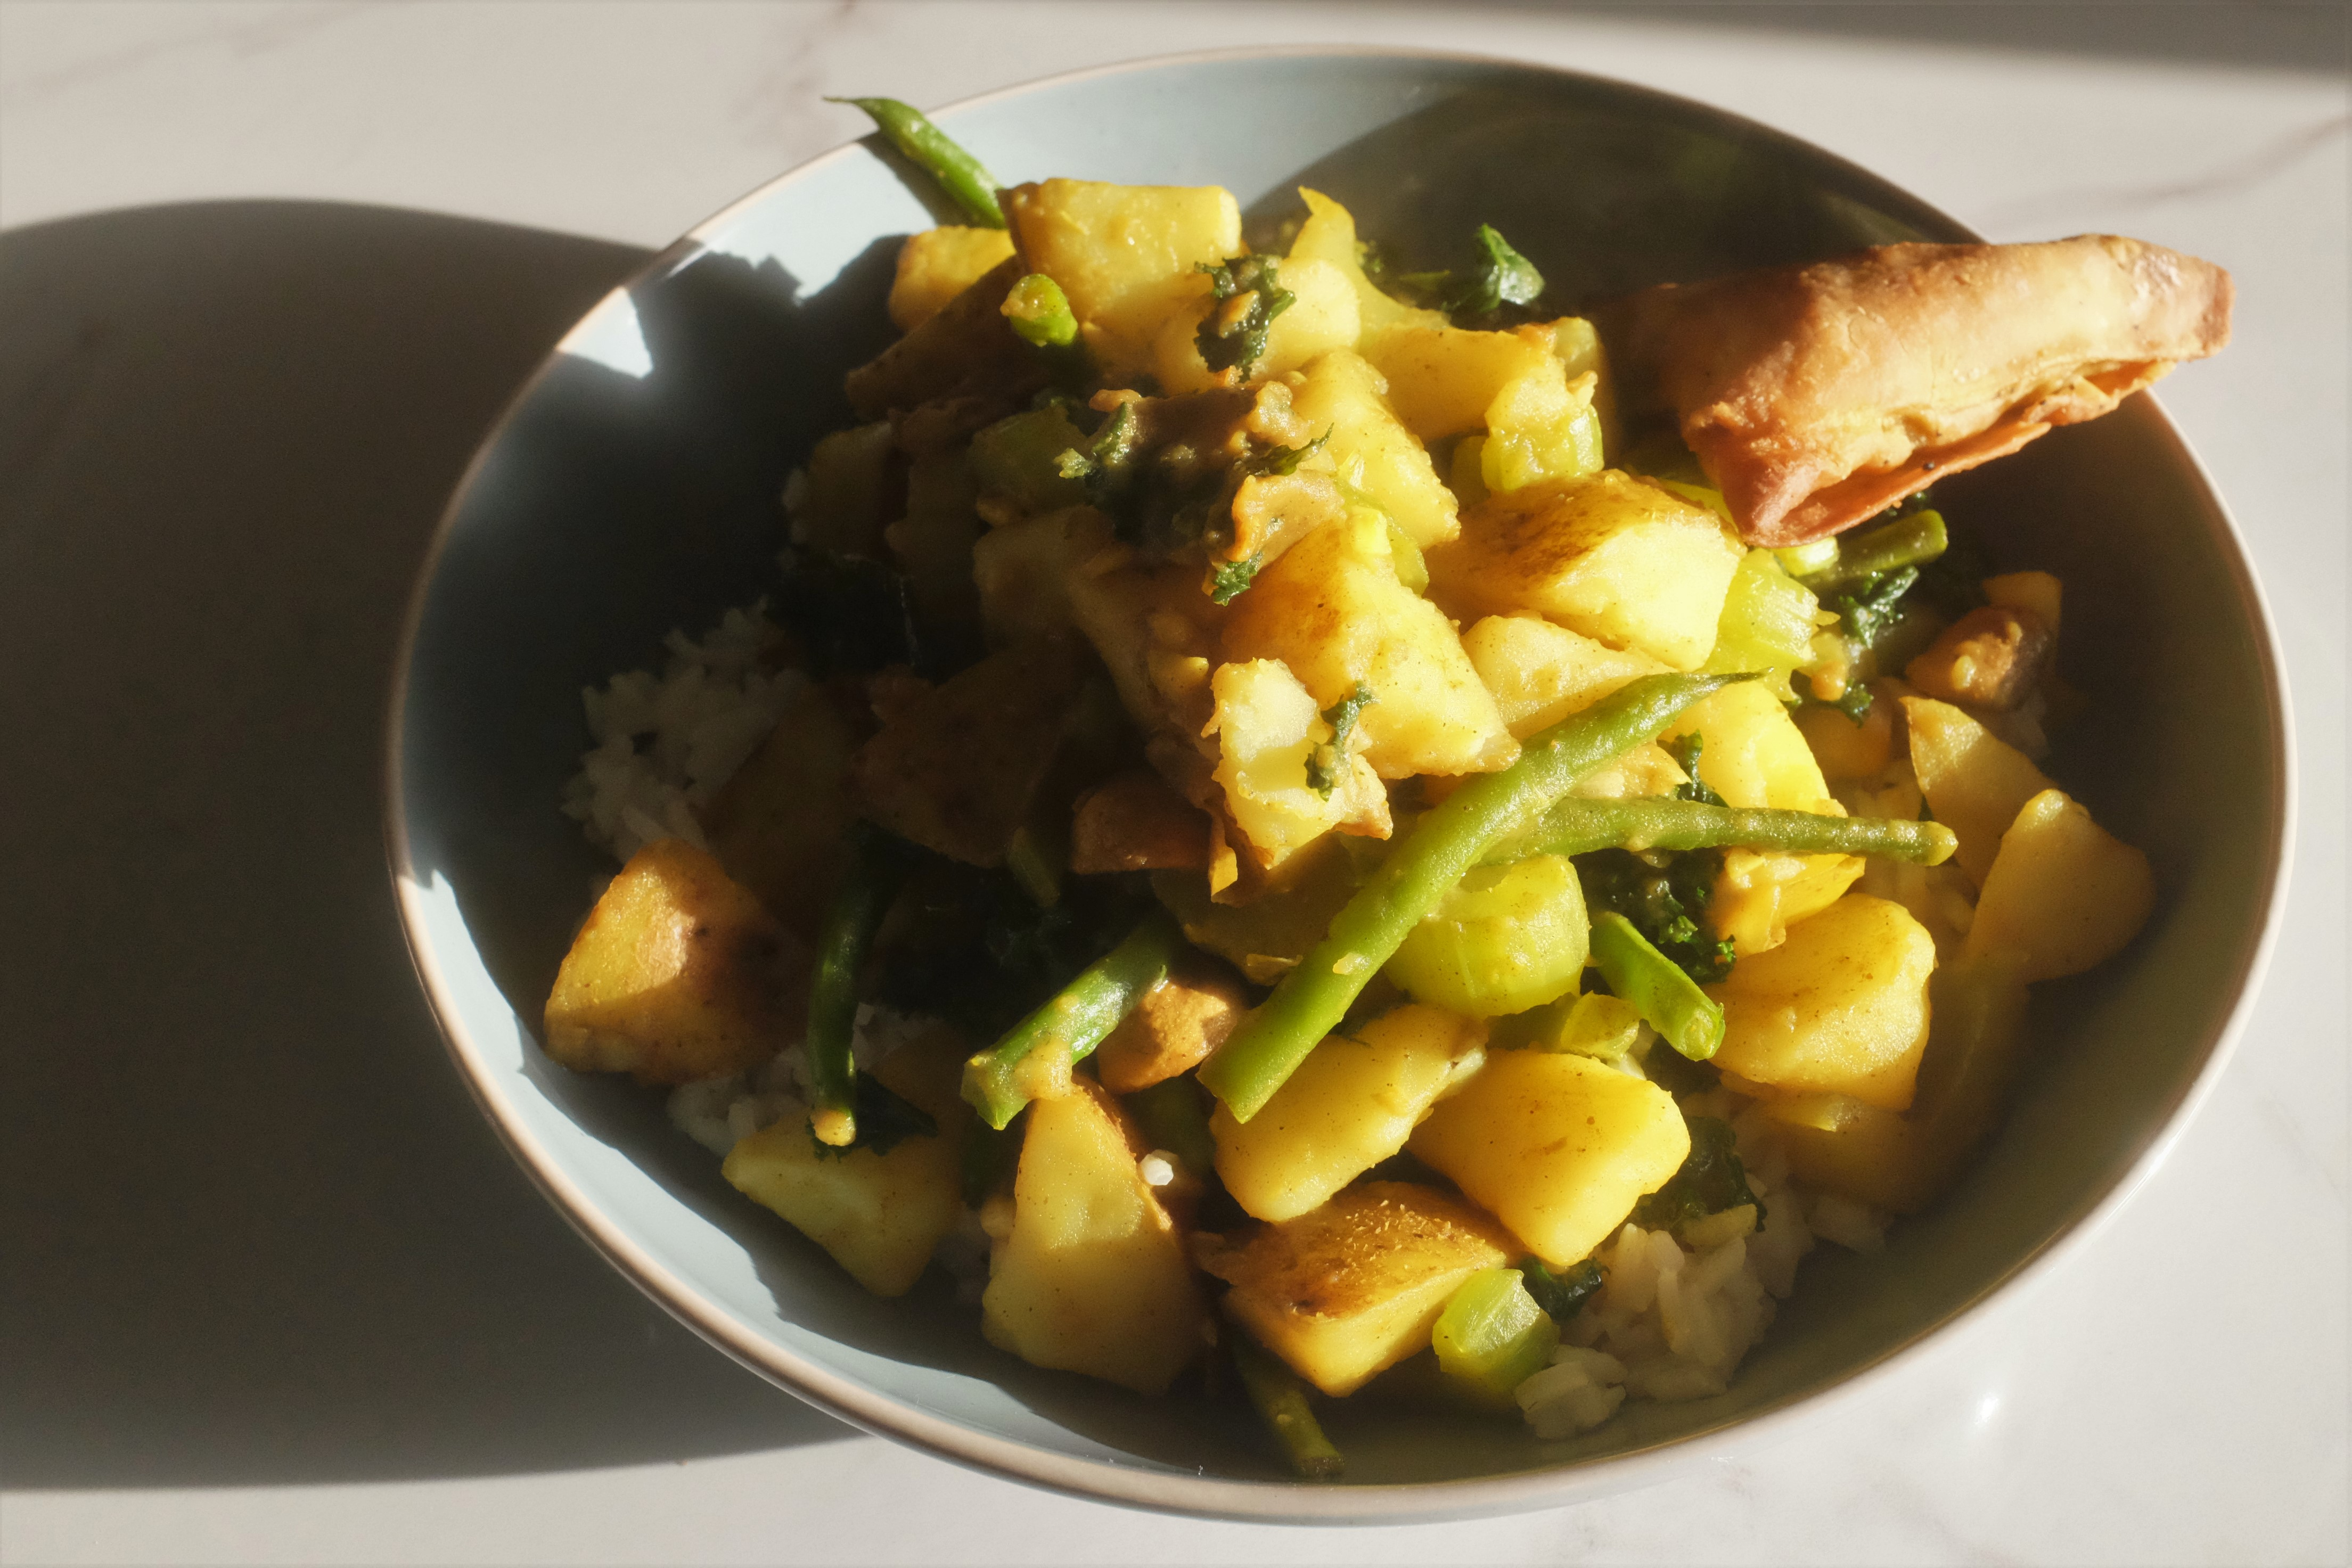 Vegetable and potato curry on a bed of rice in a large bowl